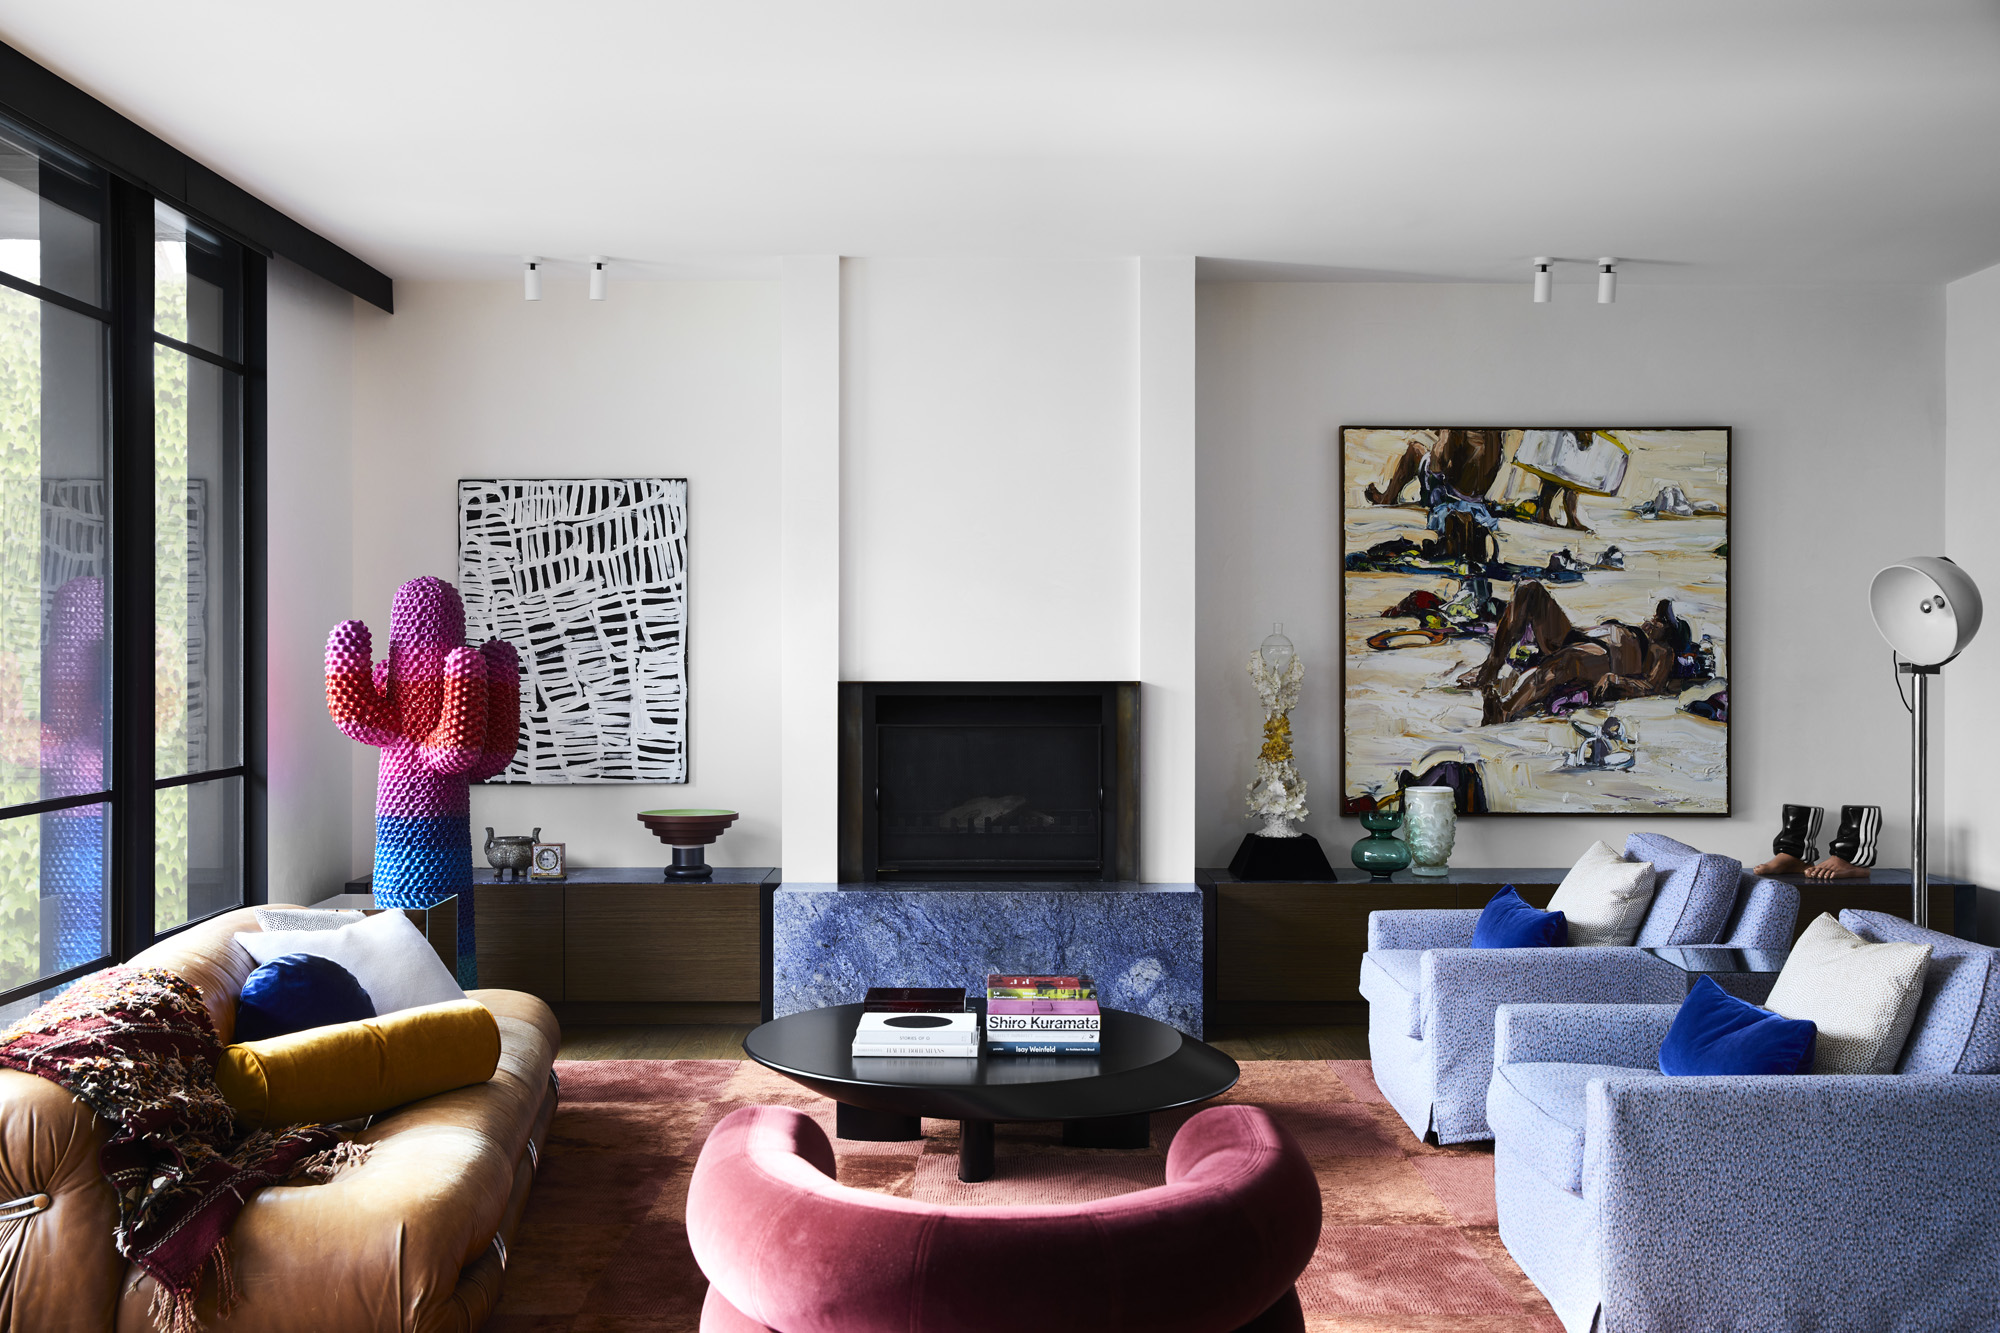 Dulux Colour Awards 2019 - Residential Interior. Prahran Residence by Flack Studio (and below). Photo - Sharyn Cairns.